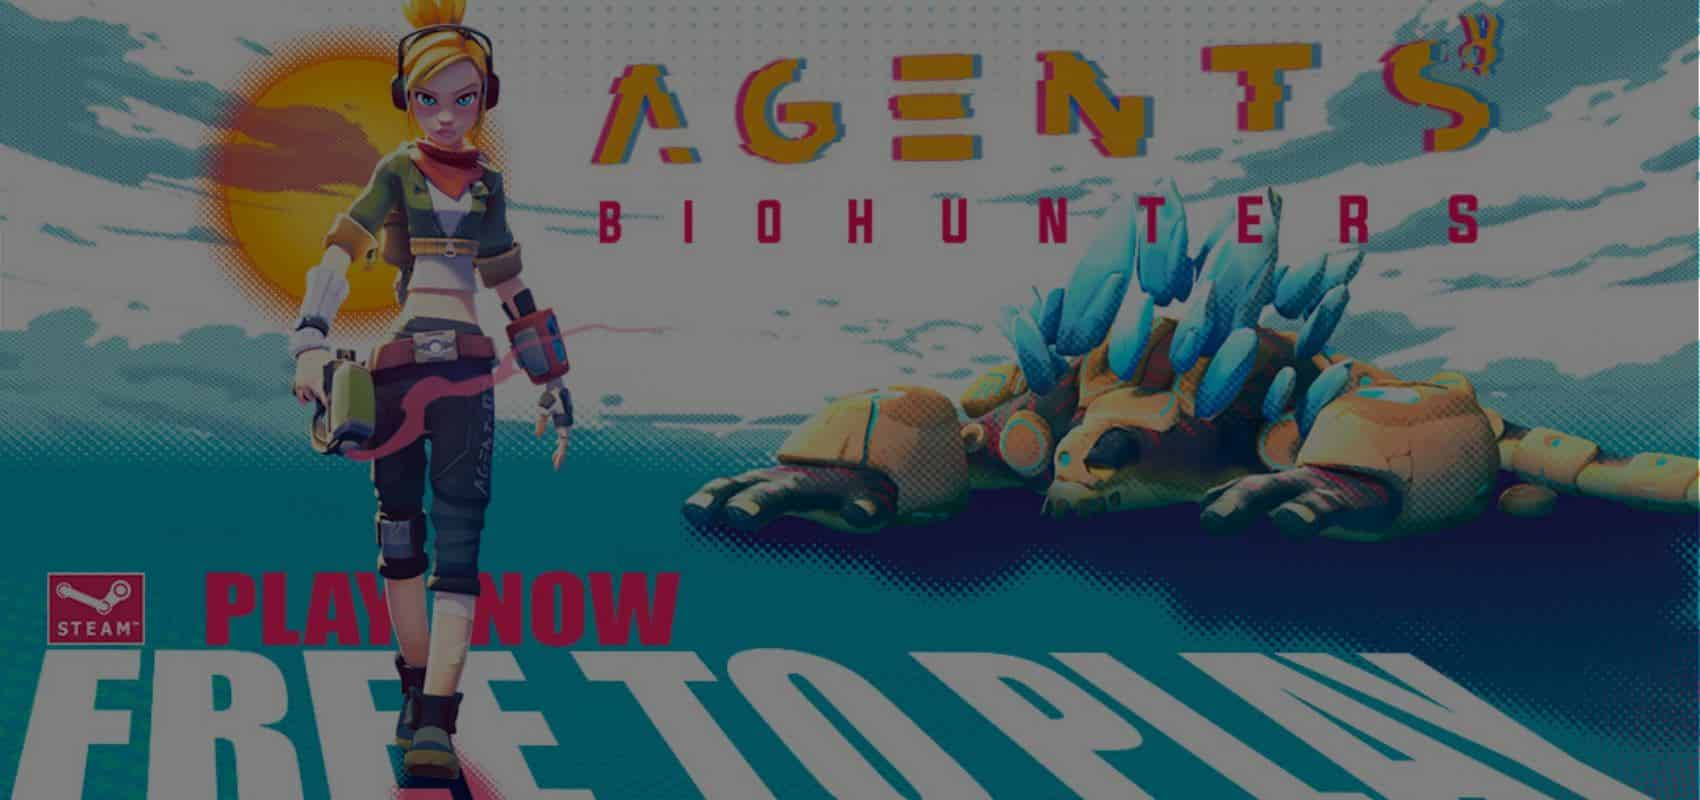 Team up and take down colossal creatures in Agents: Biohunters now in Early Access